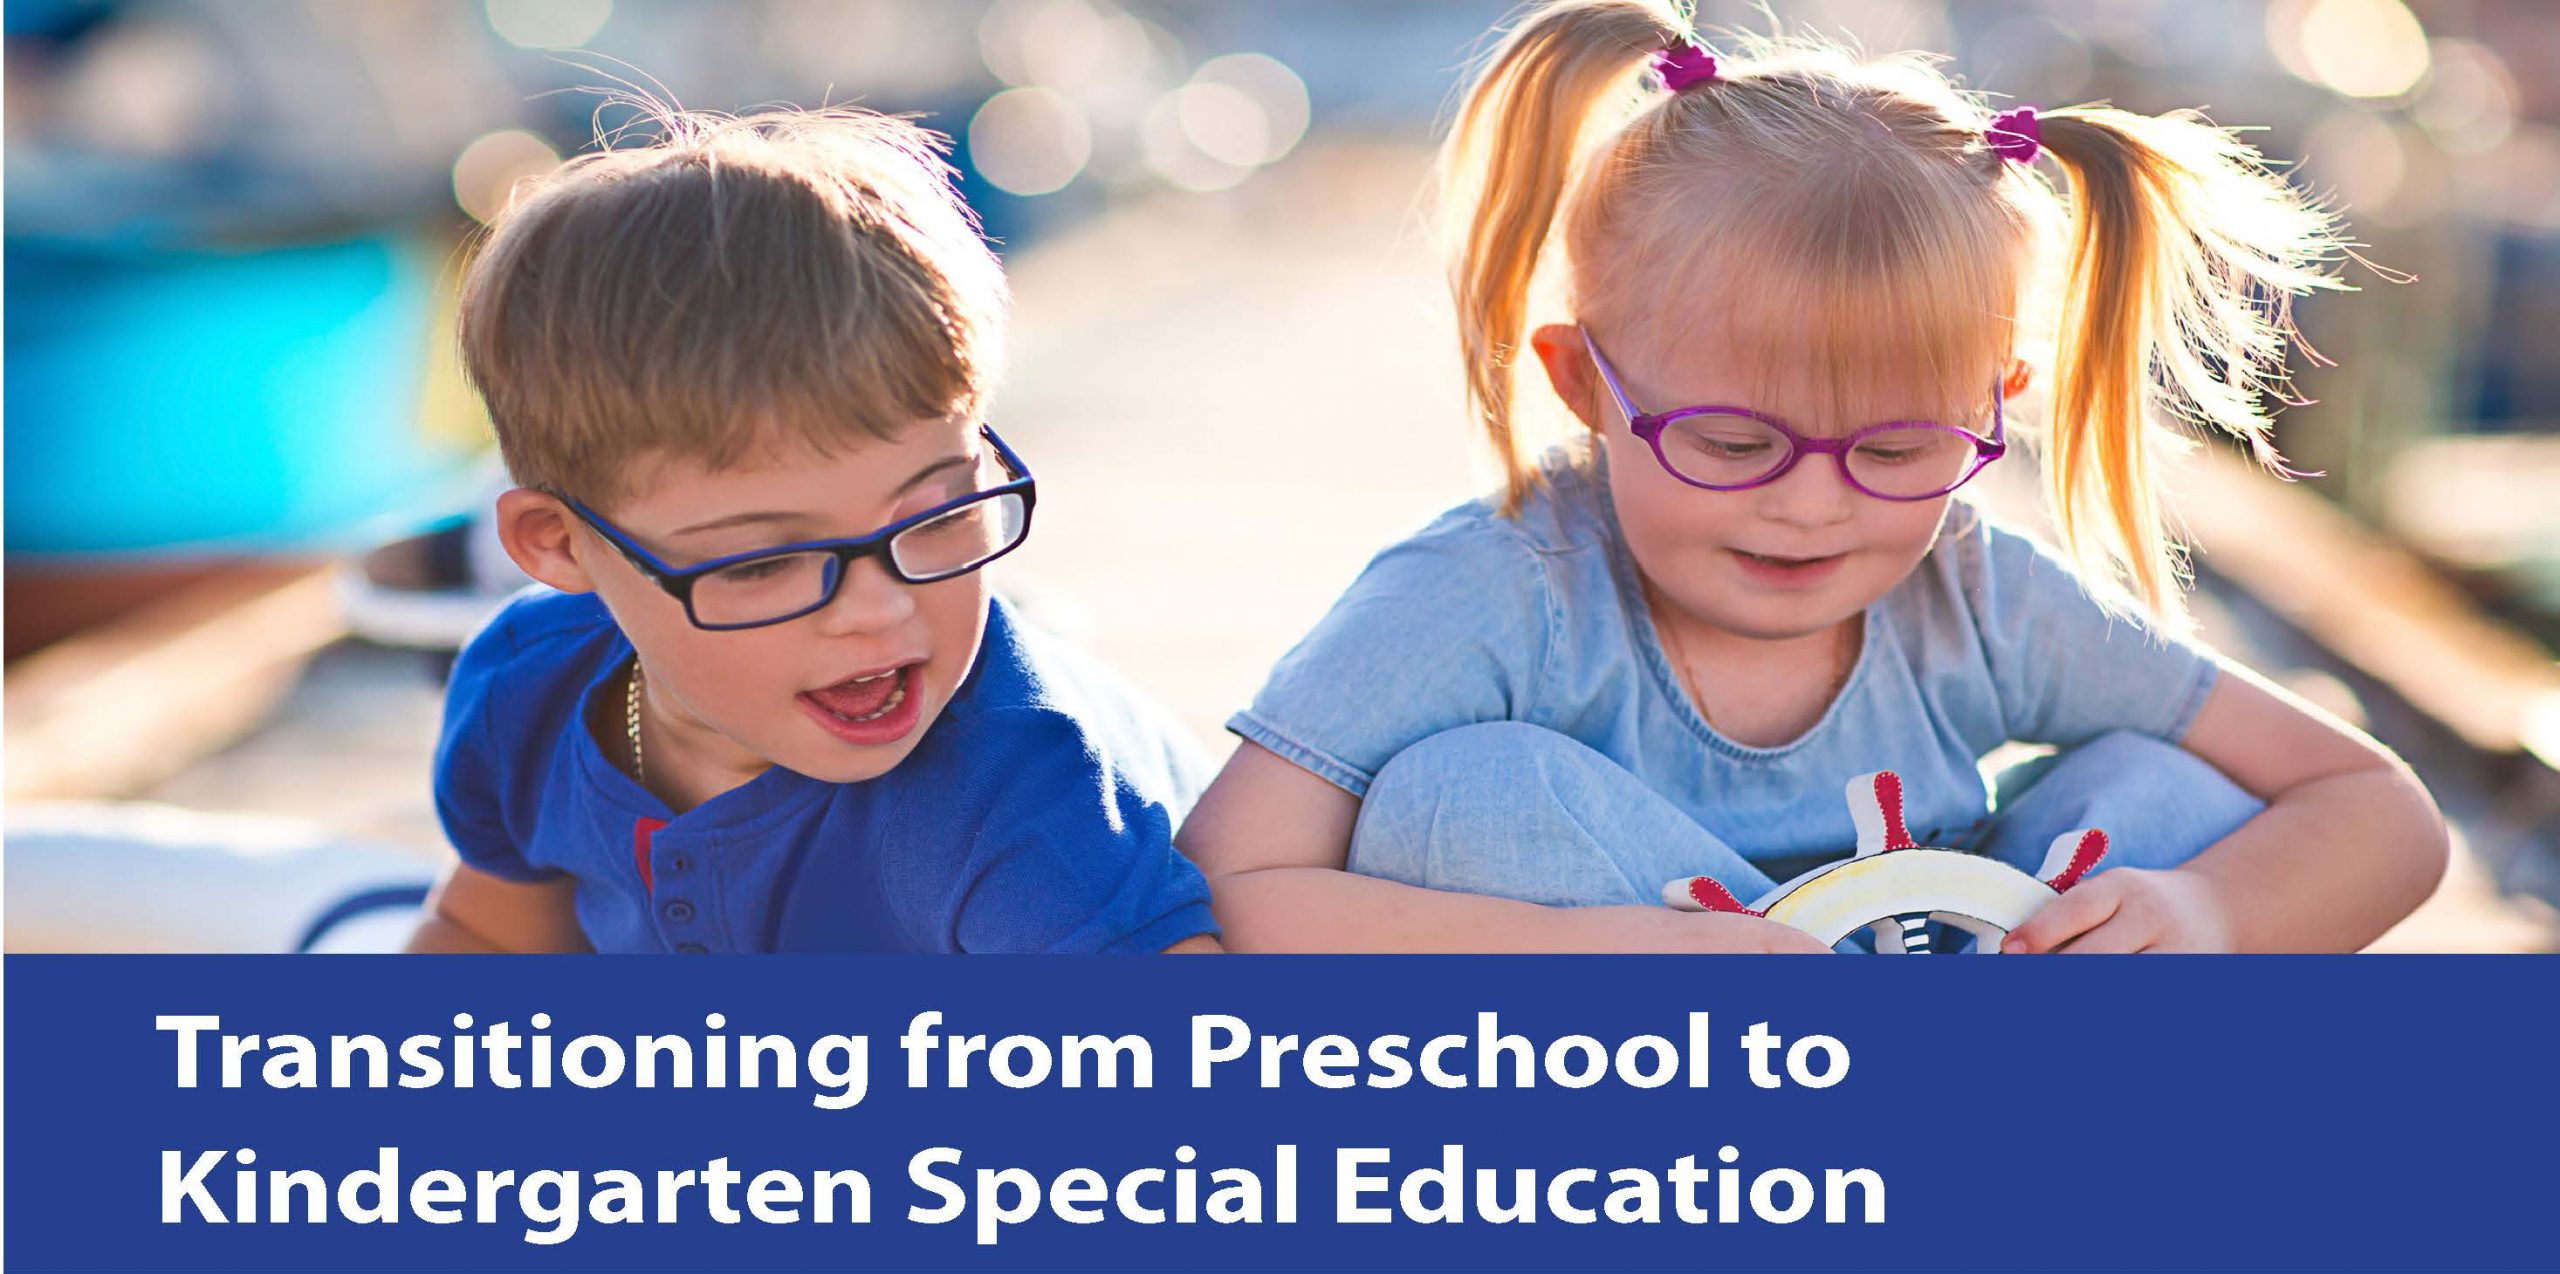 Picture of two small kids playing with the words Transition from Preschool Kindergarten Special Education